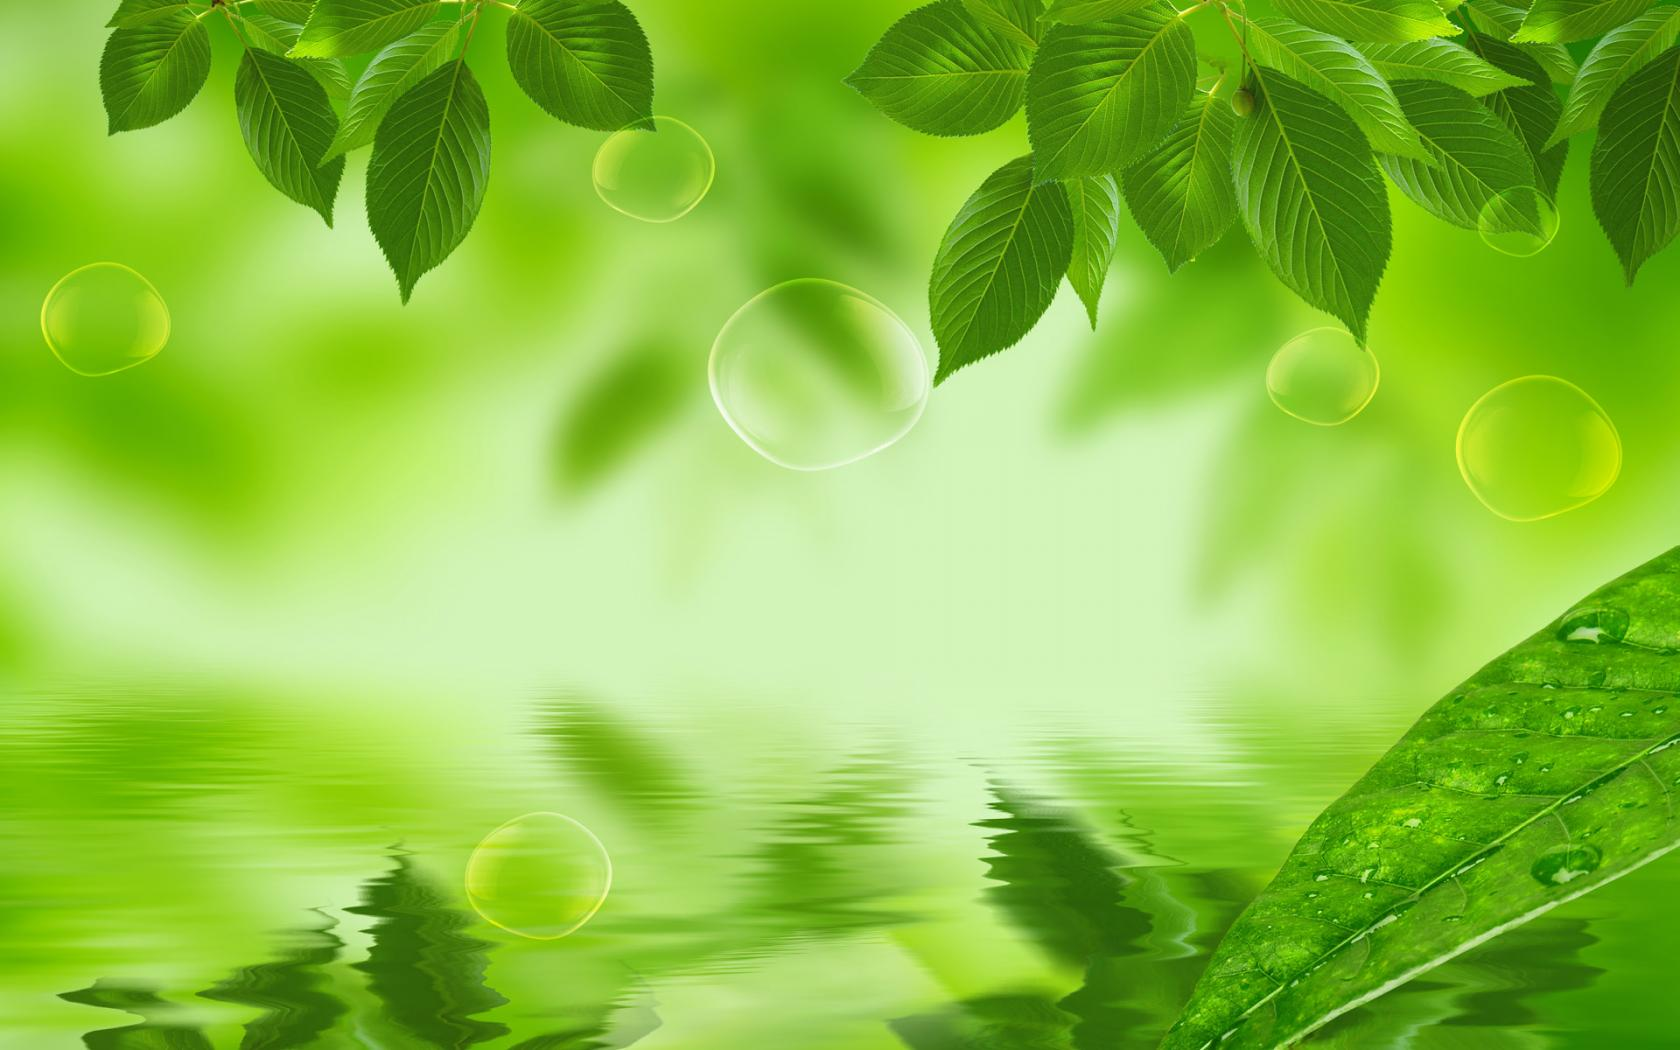 Charming-Green-Nature-Desktop-Backgrounds